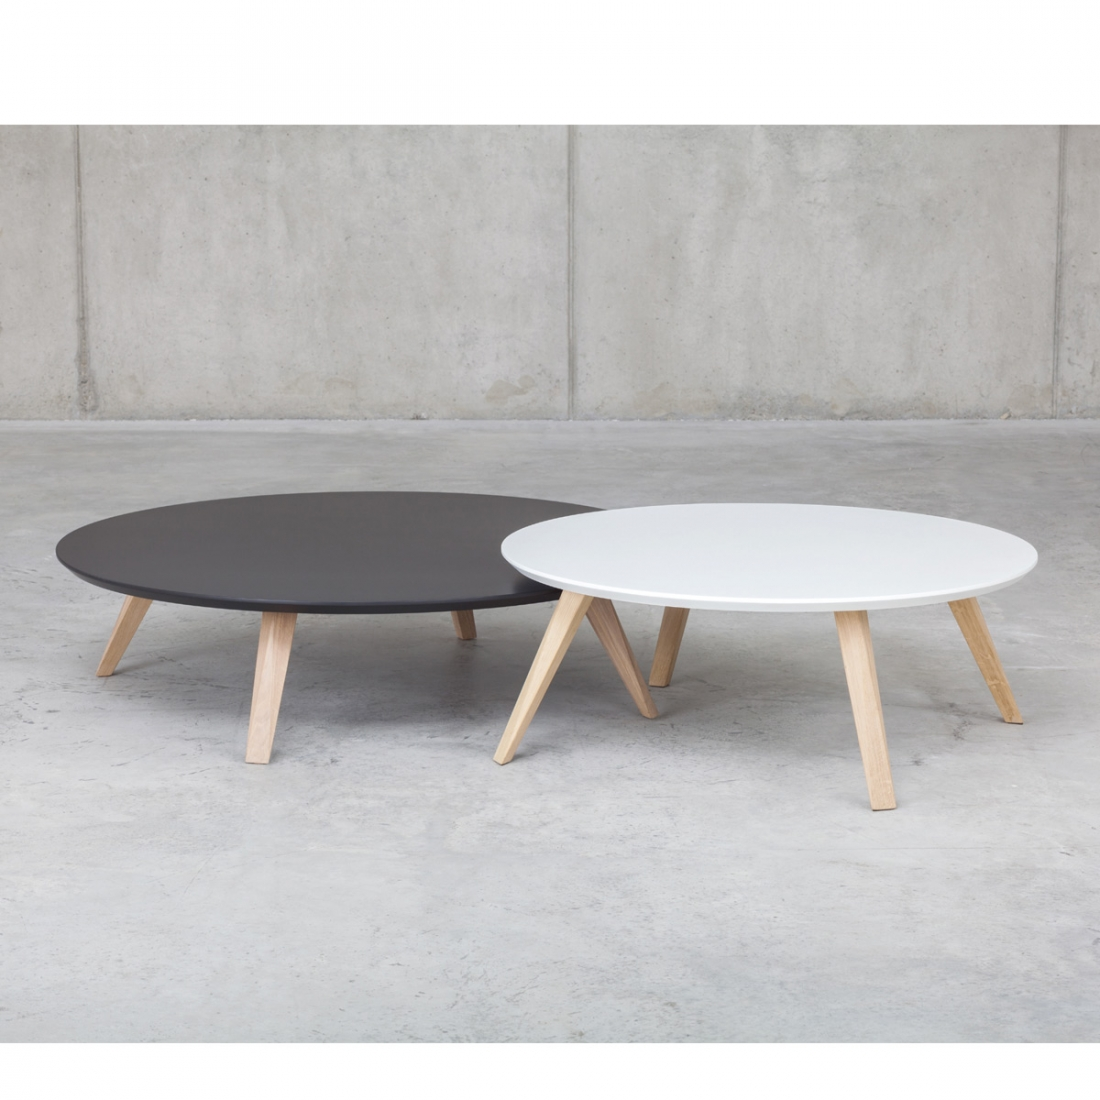 Table basse en bois prostoria zendart design - Table basse design scandinave ...